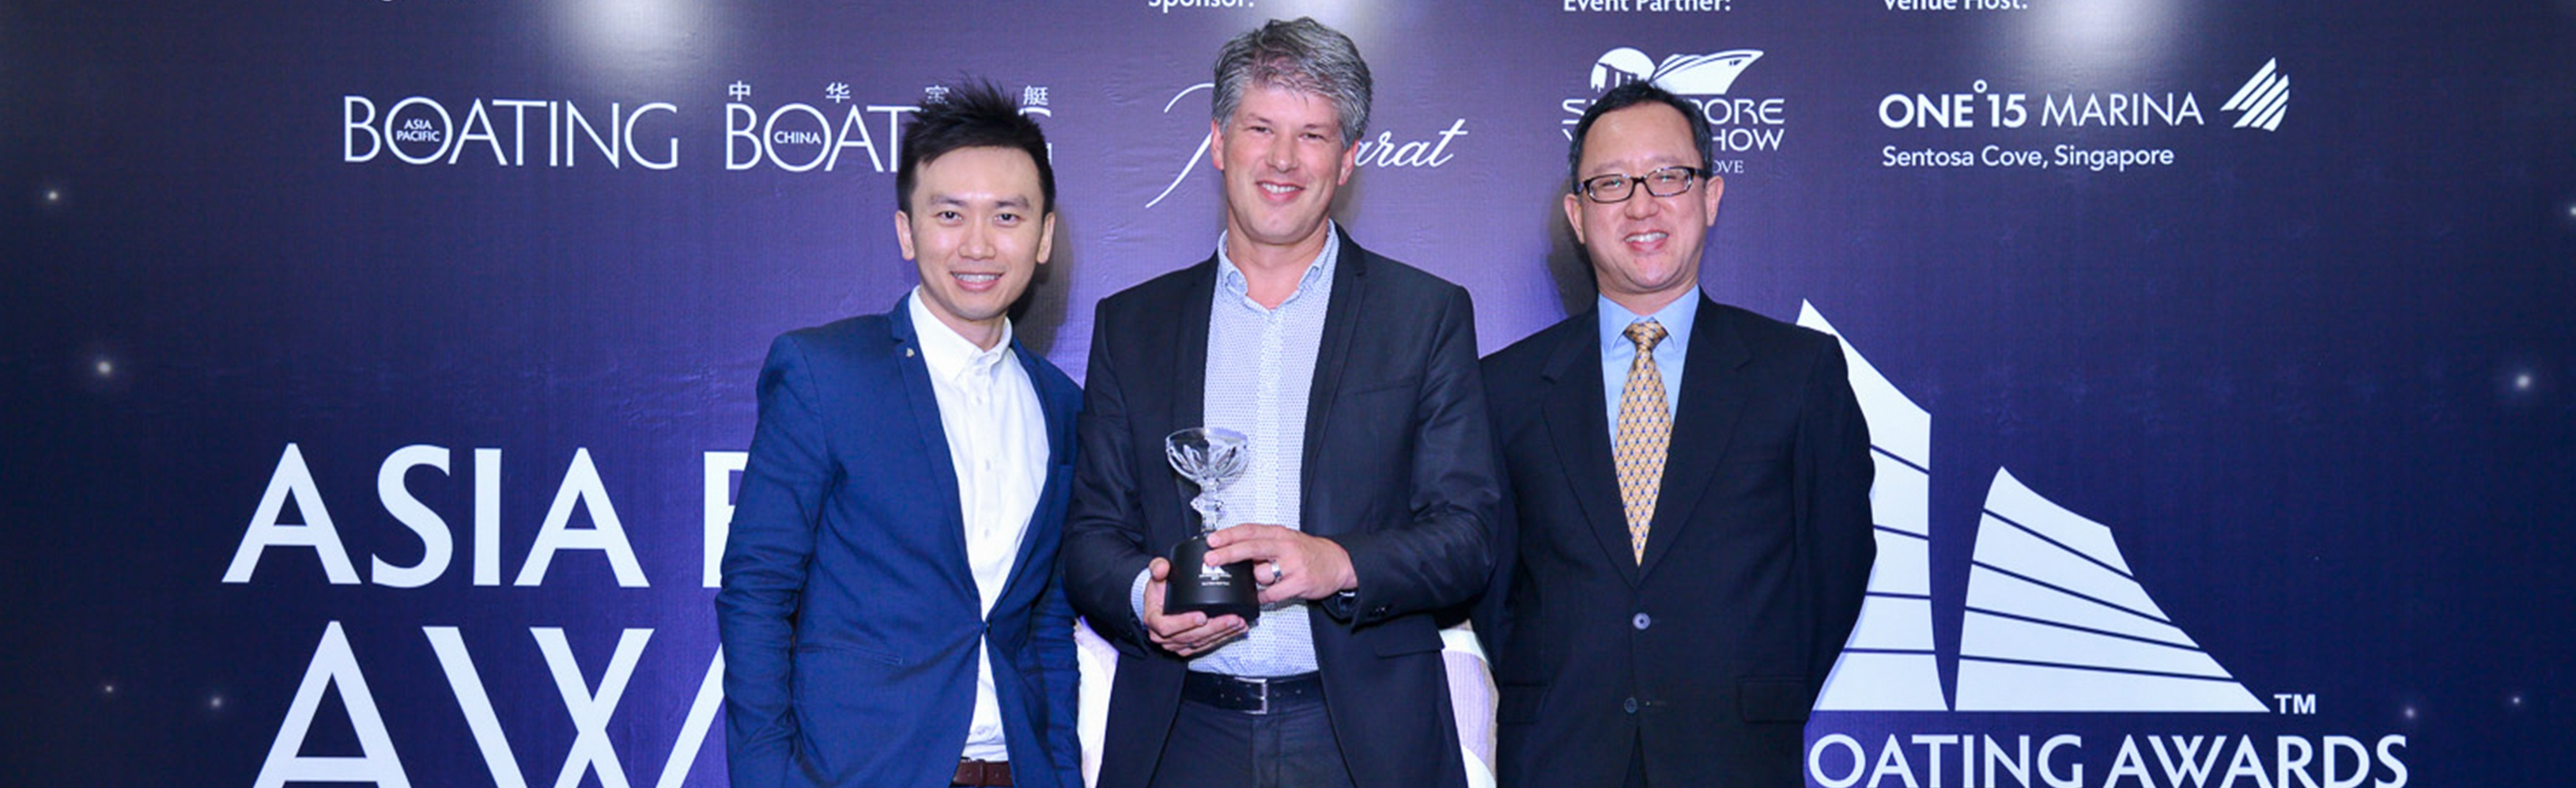 Asia-Boating-Awards-2017.jpg